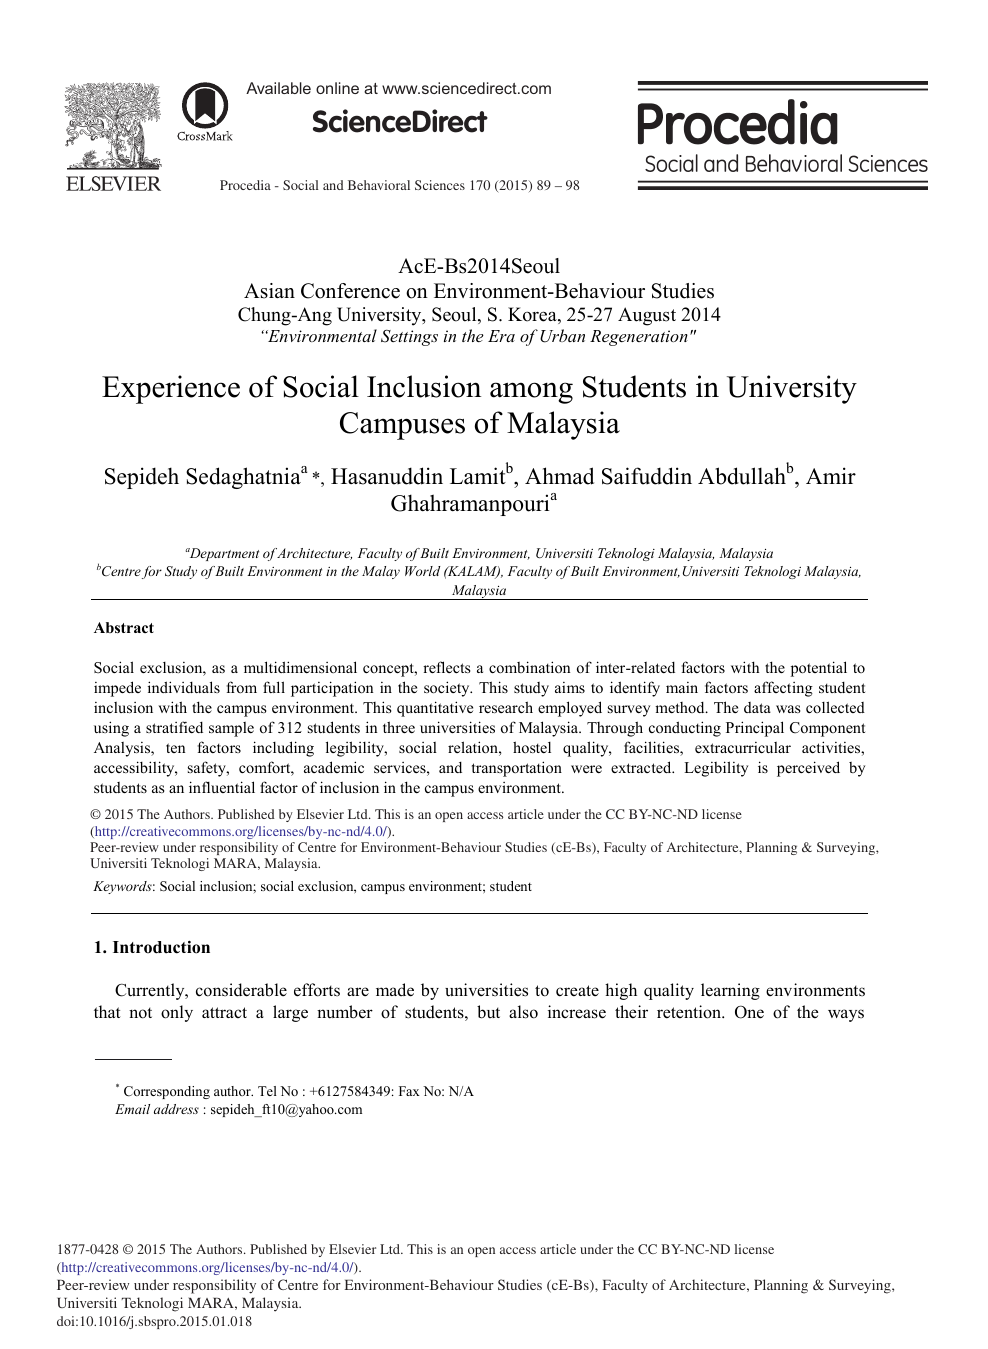 Experience of Social Inclusion among Students in University Campuses